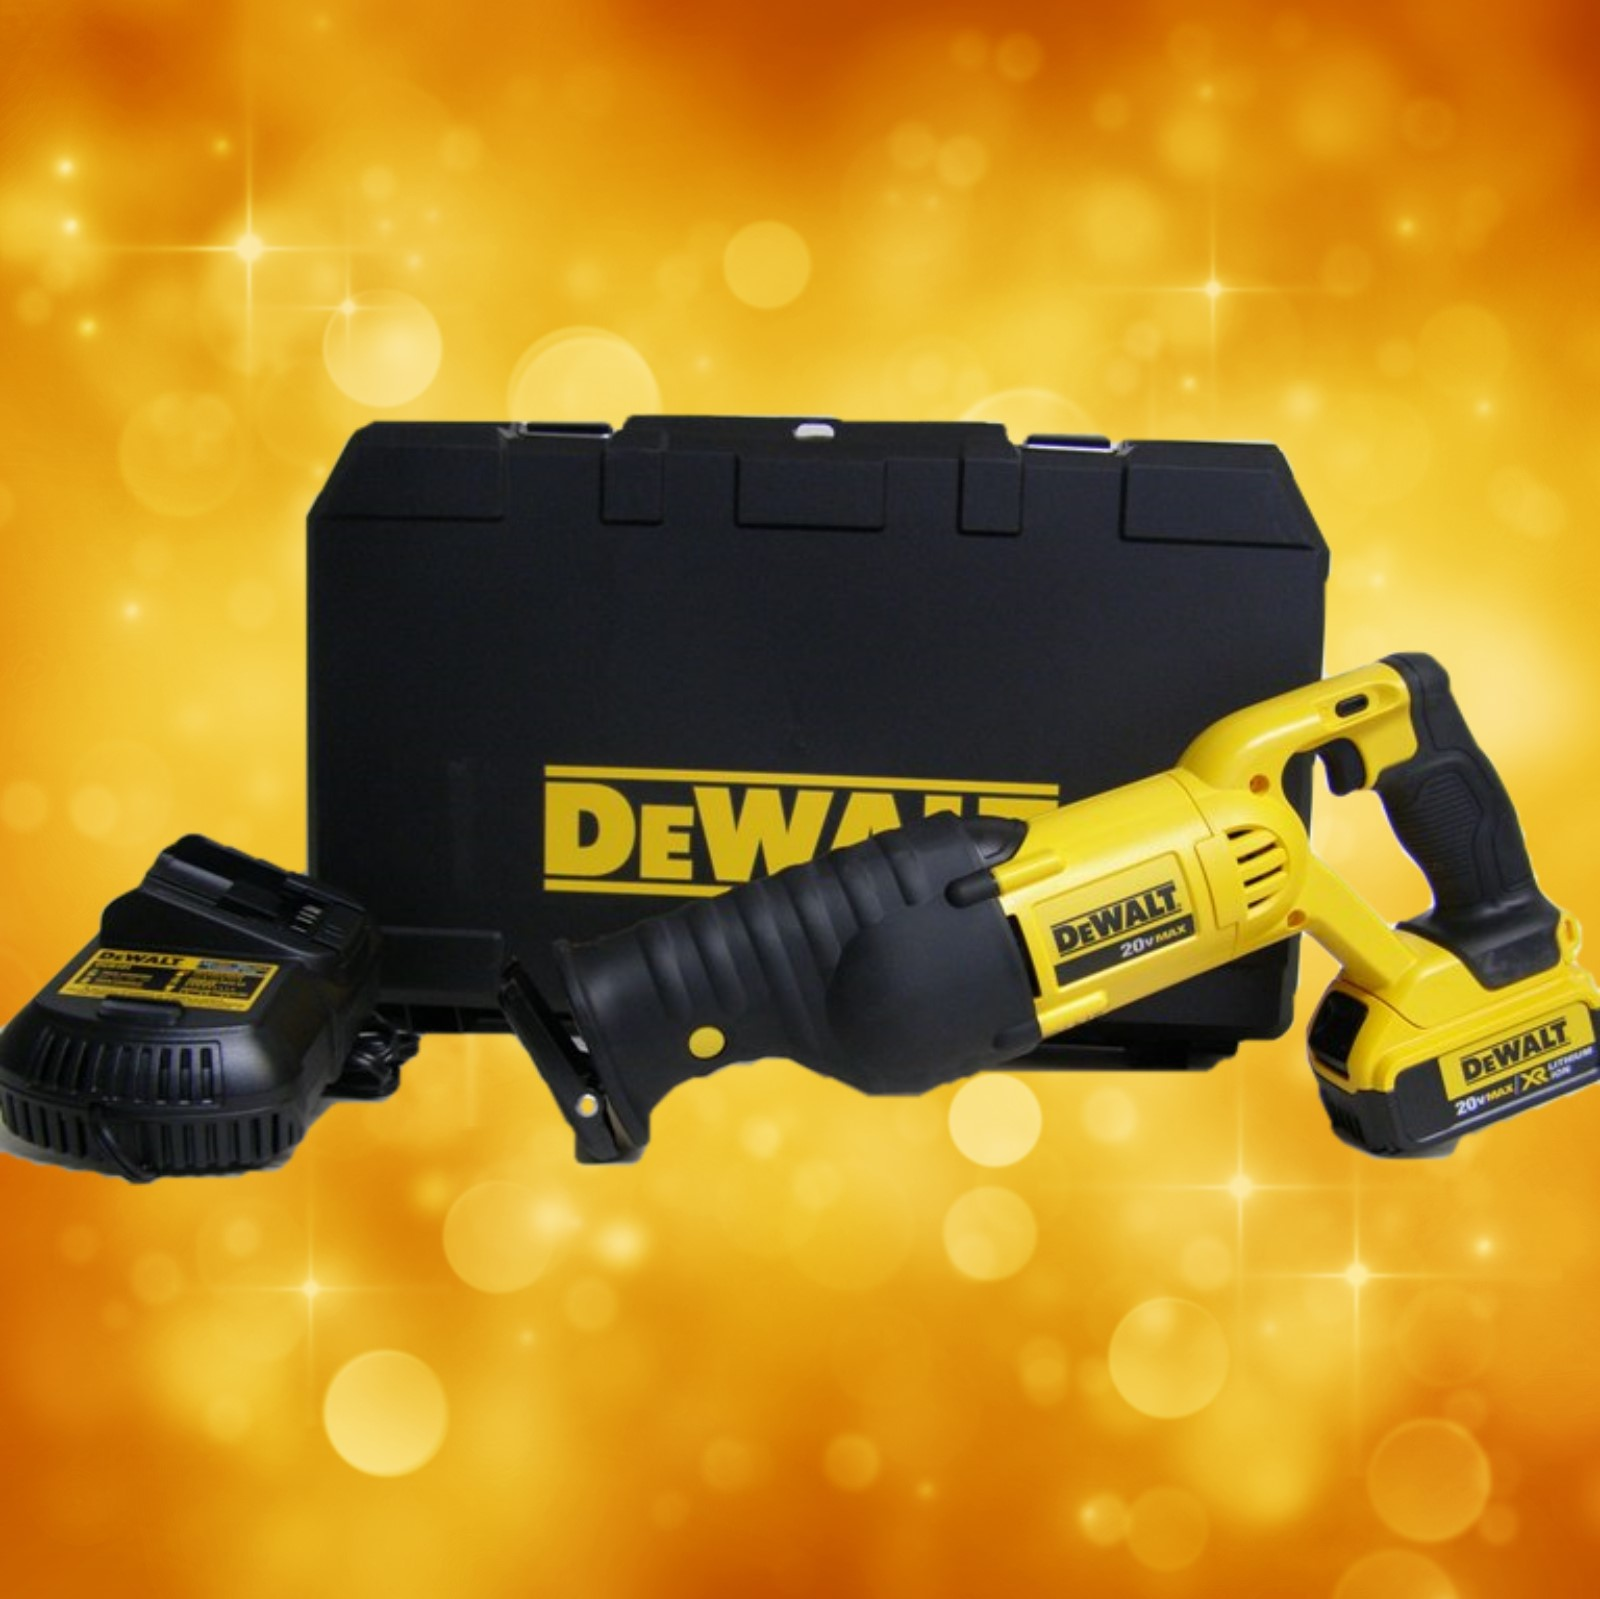 DeWalt 20V MAX RECIPROCATING SAW KIT(4.0 AH) DCS380M1 DCS380M1